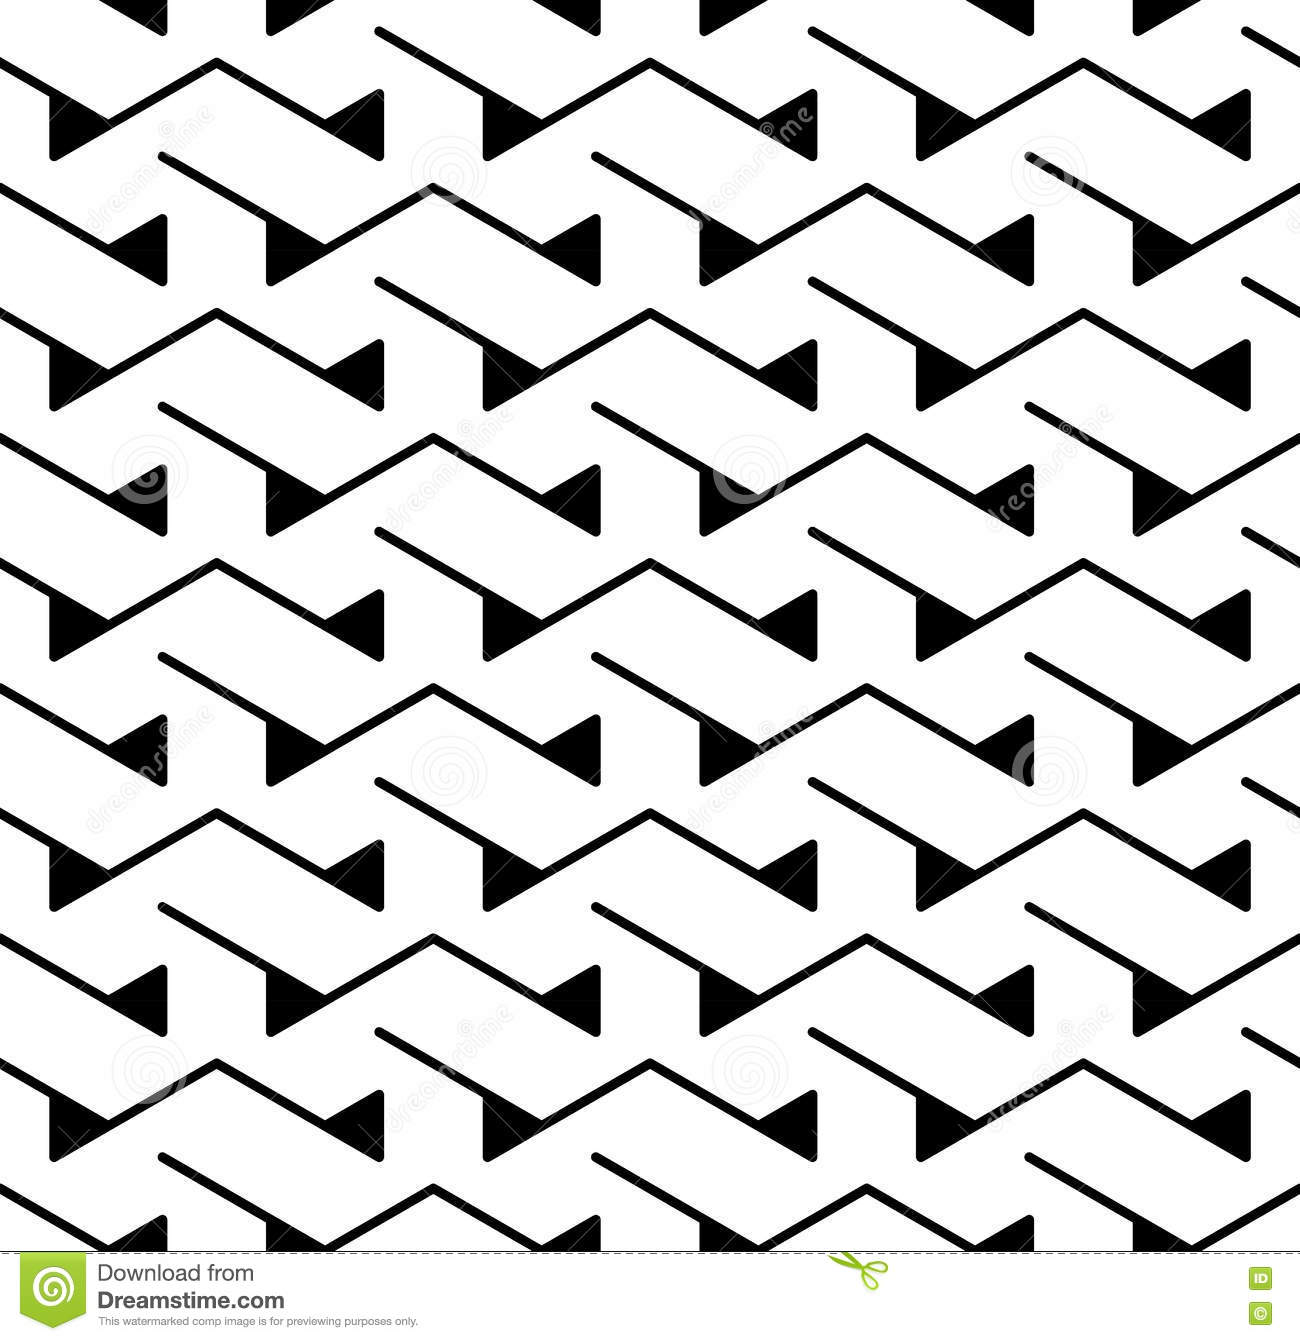 Black bed sheets pattern - Vector Modern Abstract Geometry Triangle Pattern Black And White Seamless Geometric Background